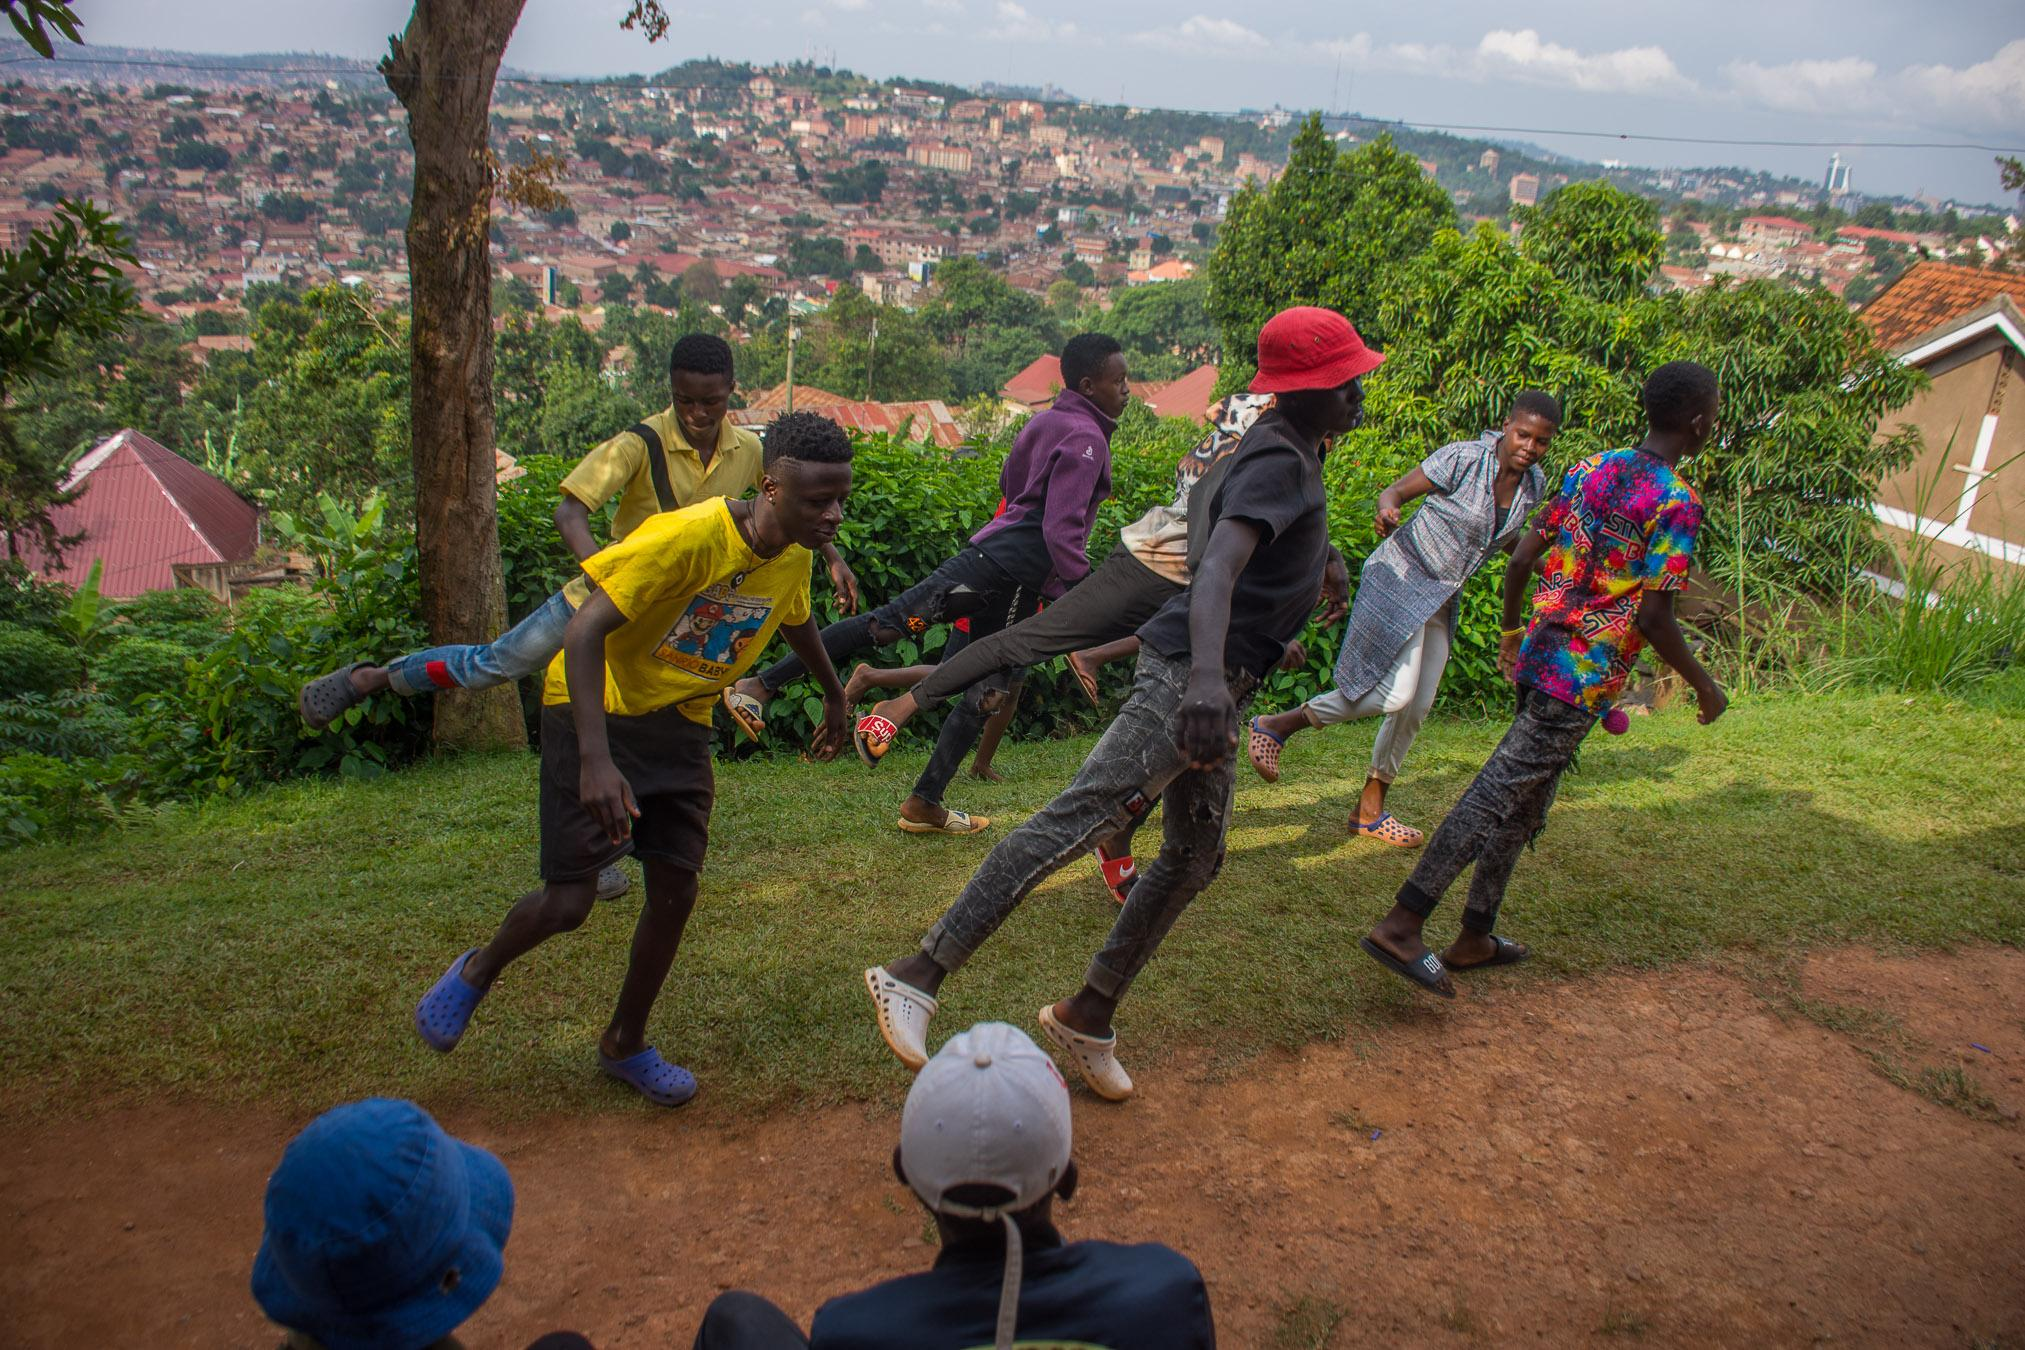 Step Code Crew members pulling off a move as colleagues look on at one of their member's home on Lubya Hill overlooking the city suburbs of Kasubi, Kawala, Kololo and Nakasero Hills..